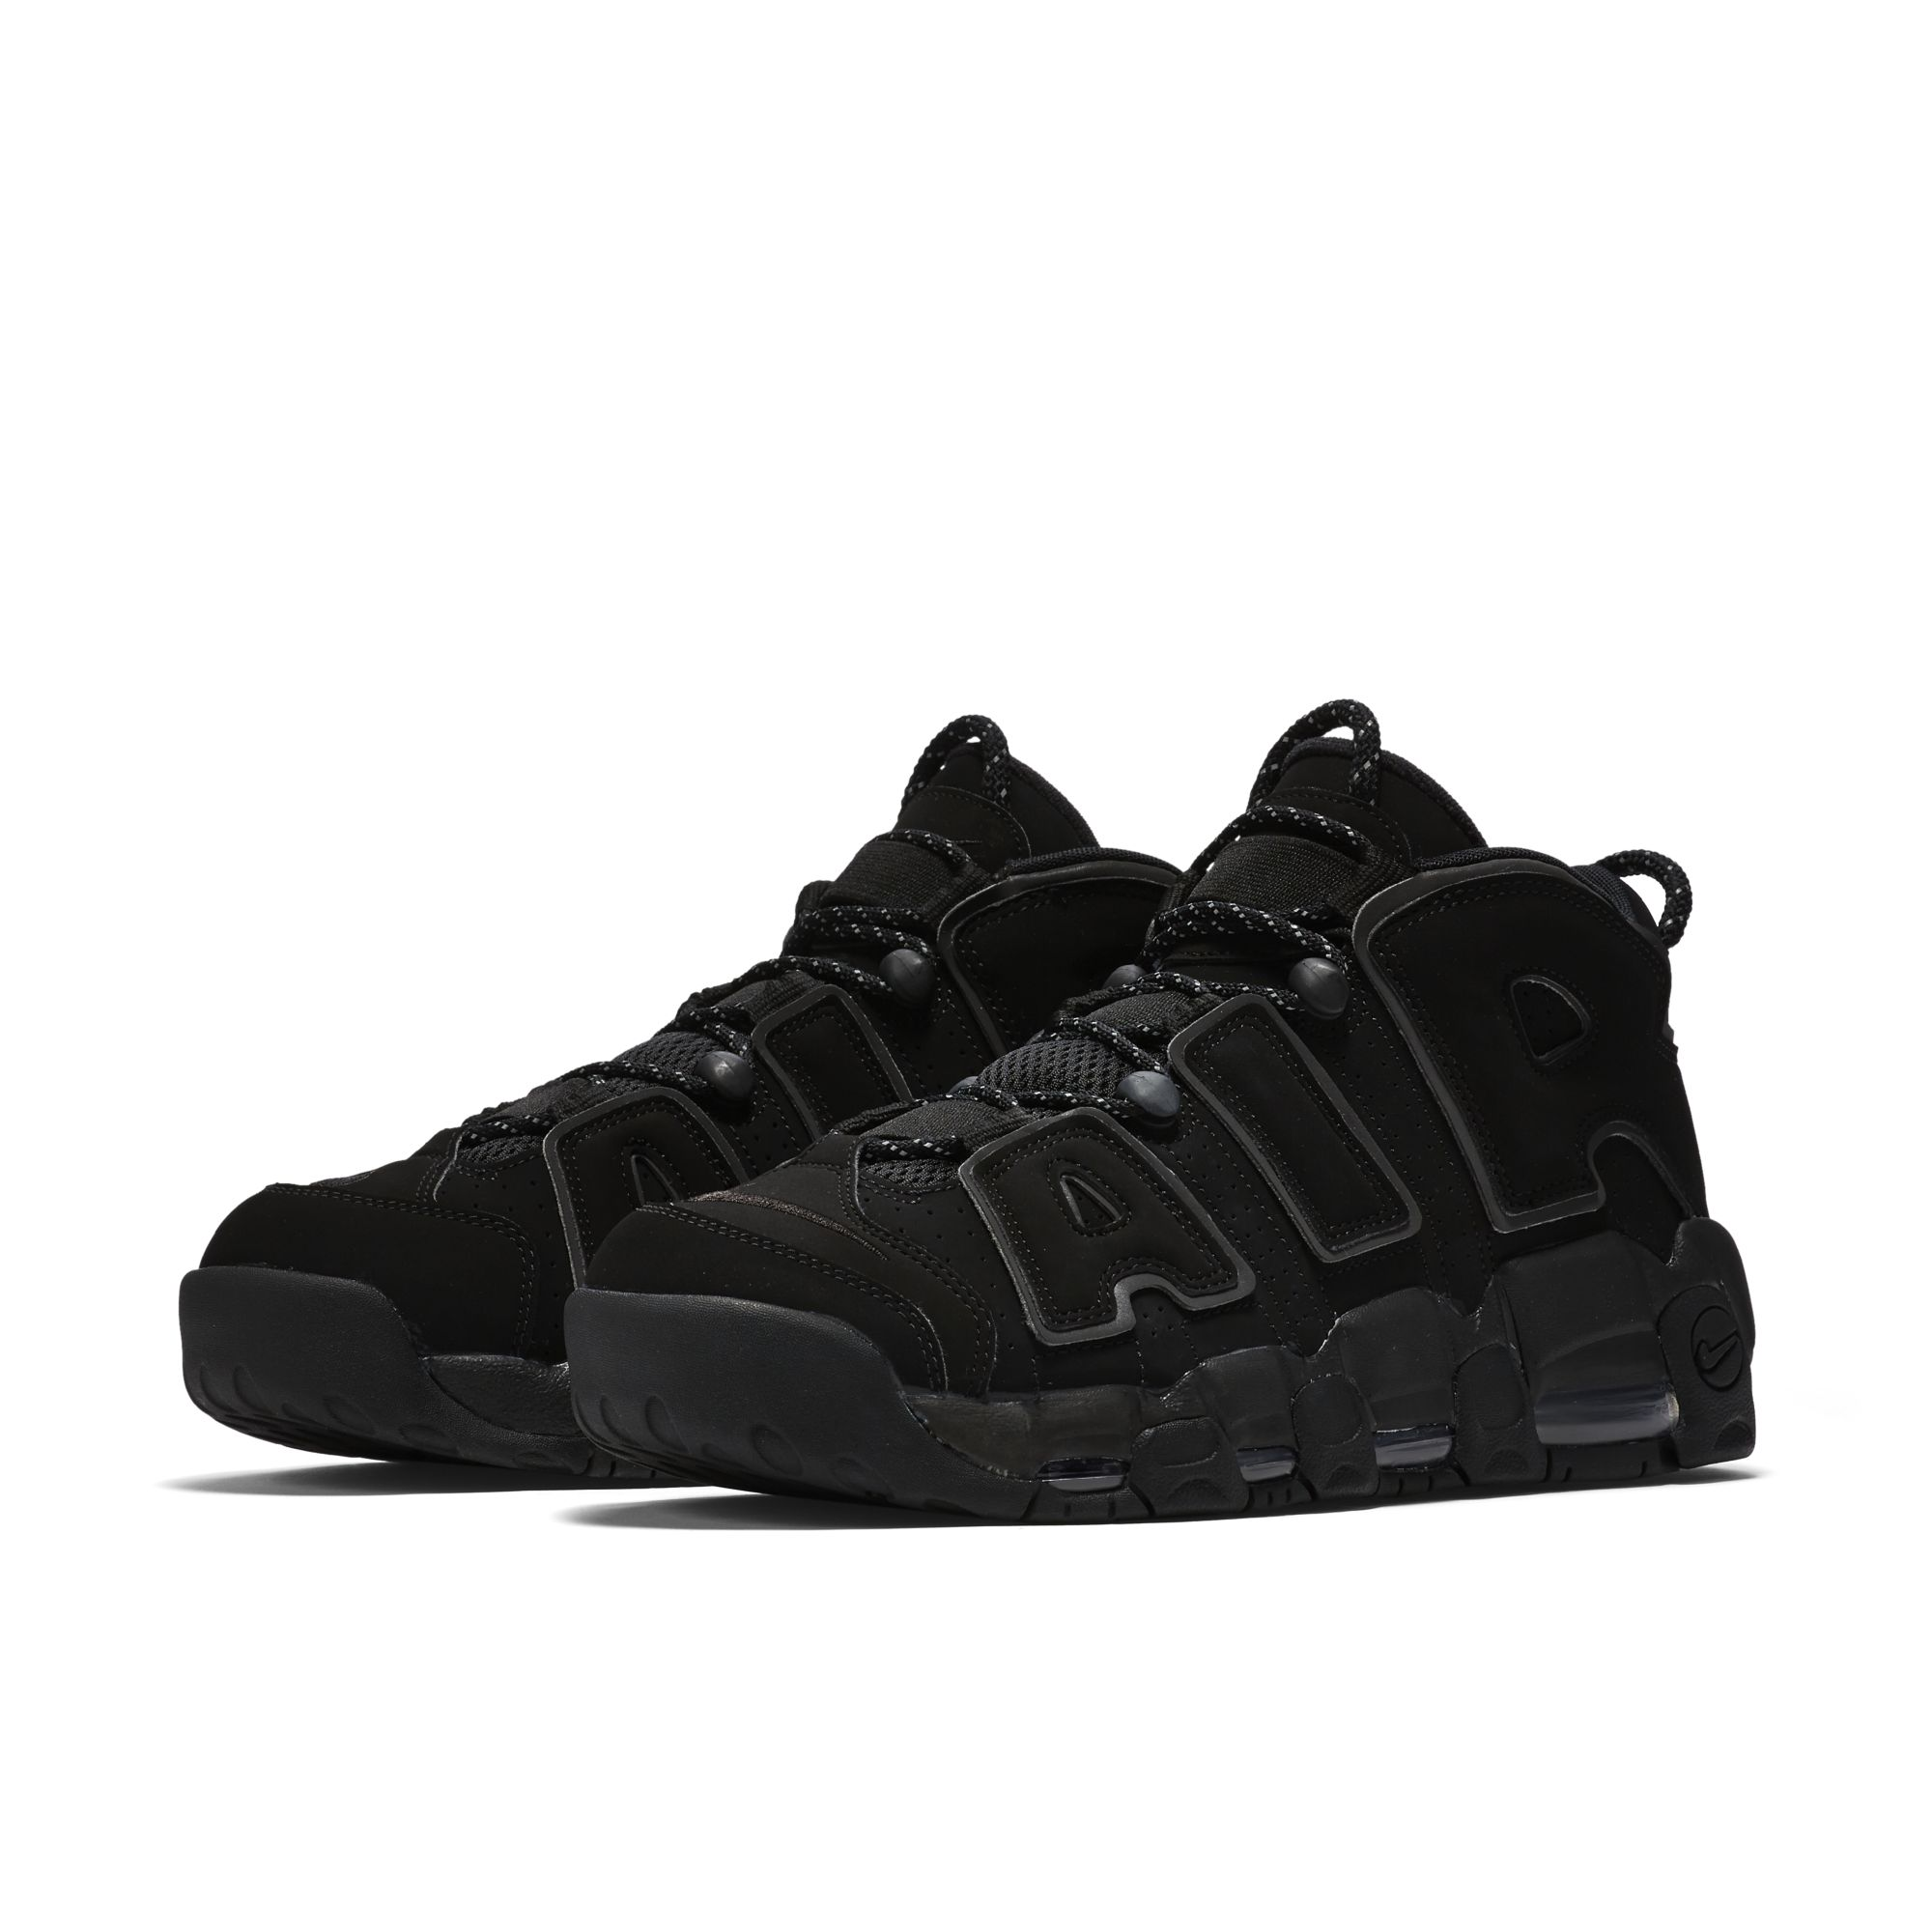 Nike Air More Uptempo in Triple Black